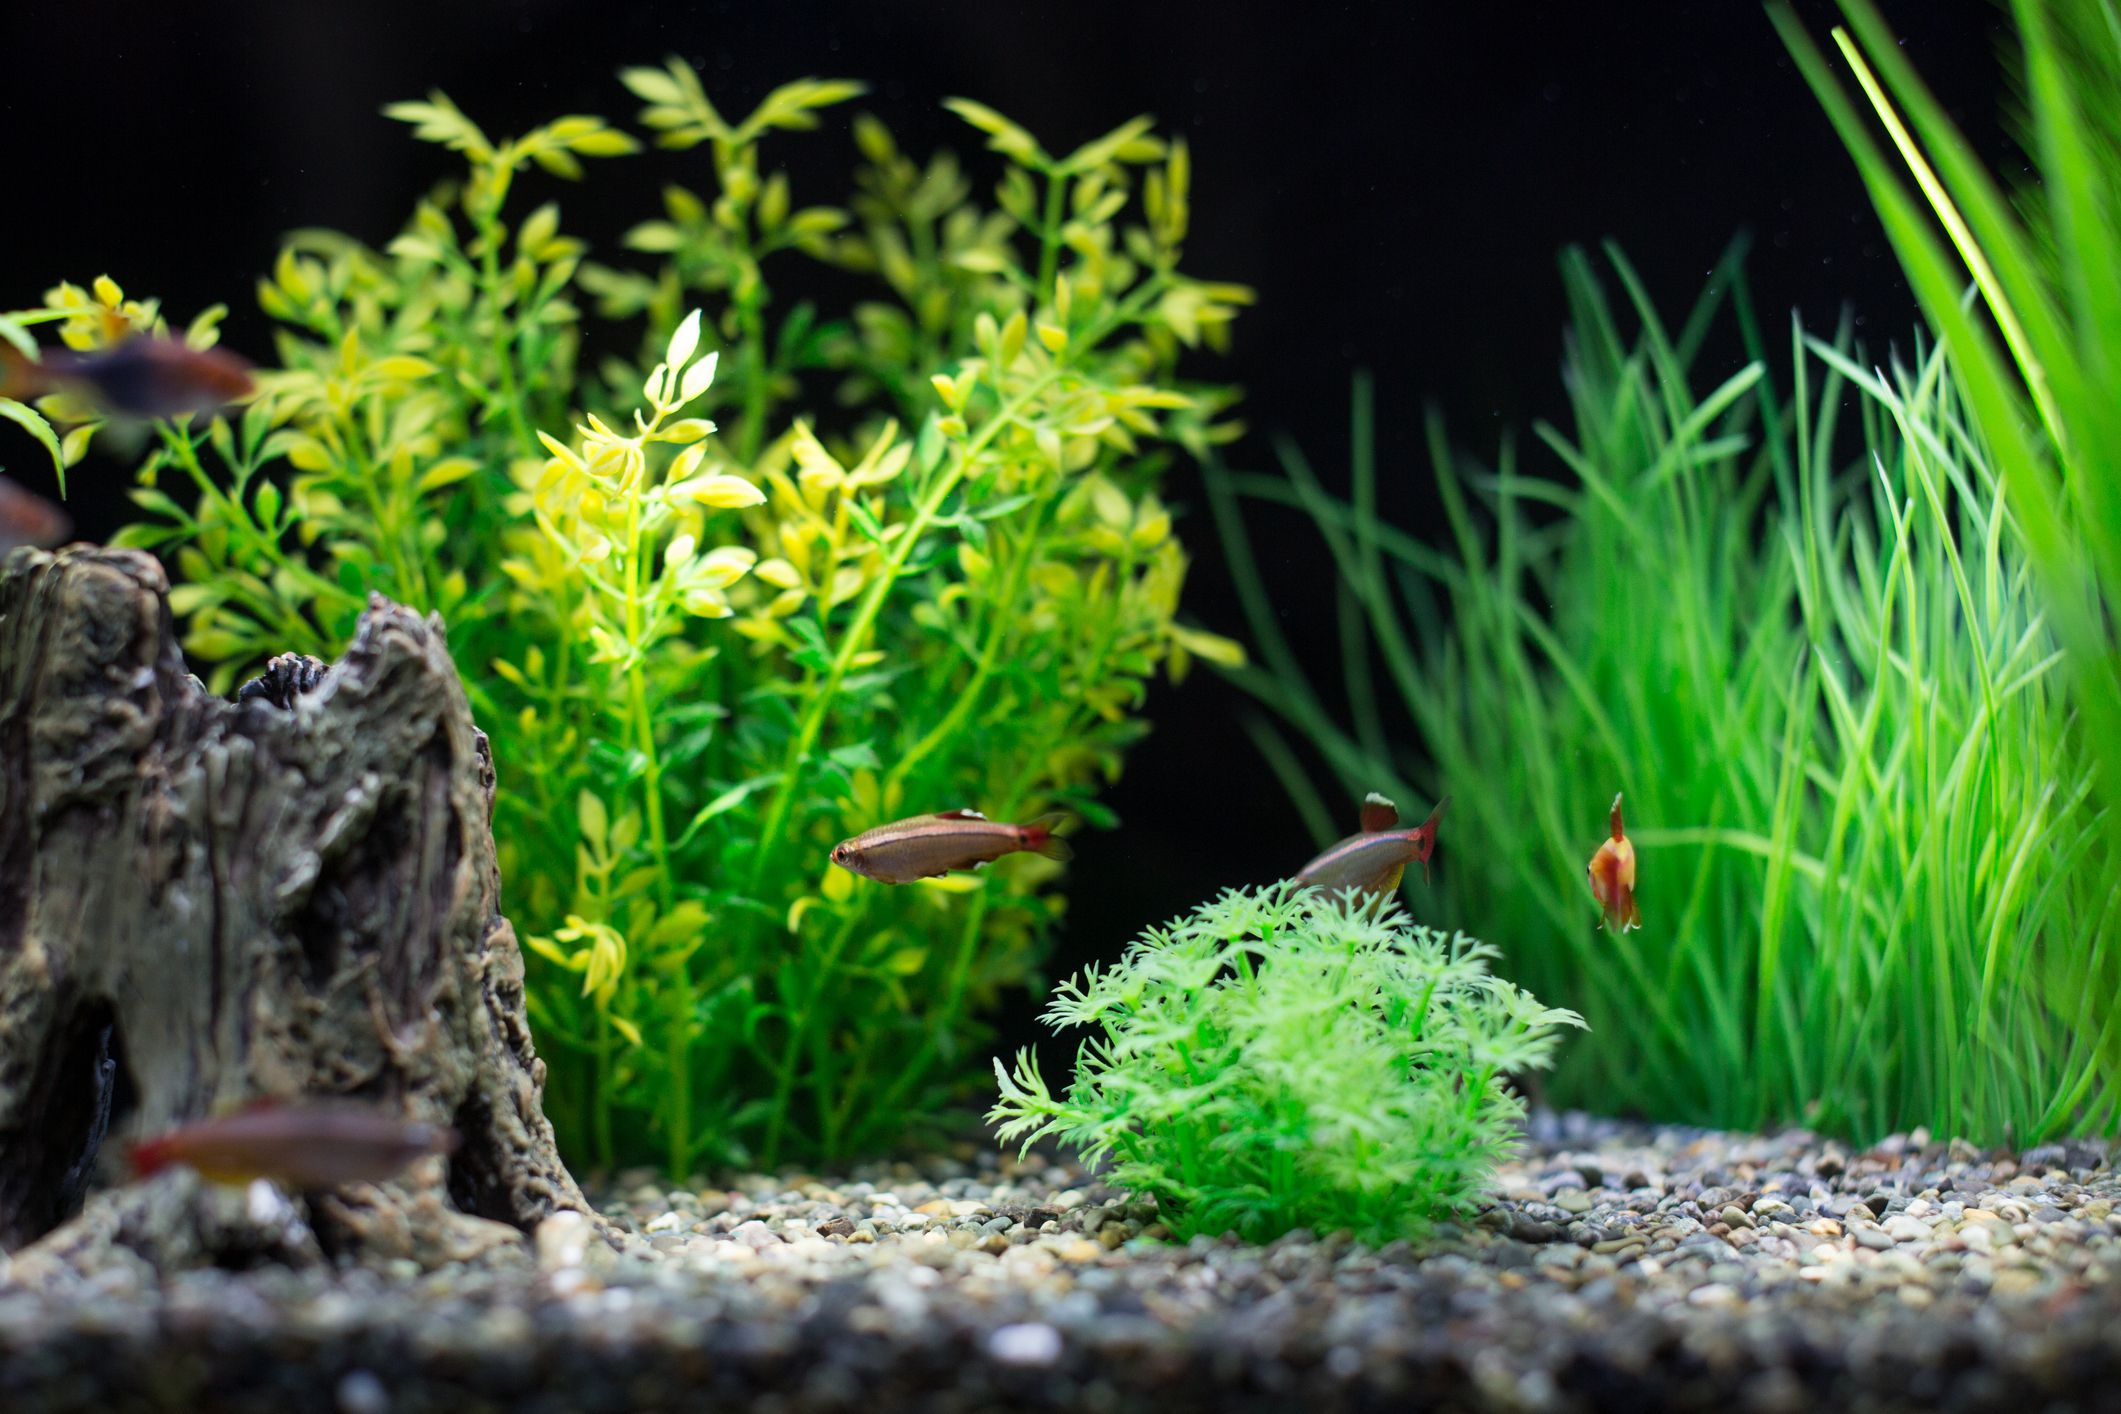 Stocking Your Aquarium Evenly With The Right Fish